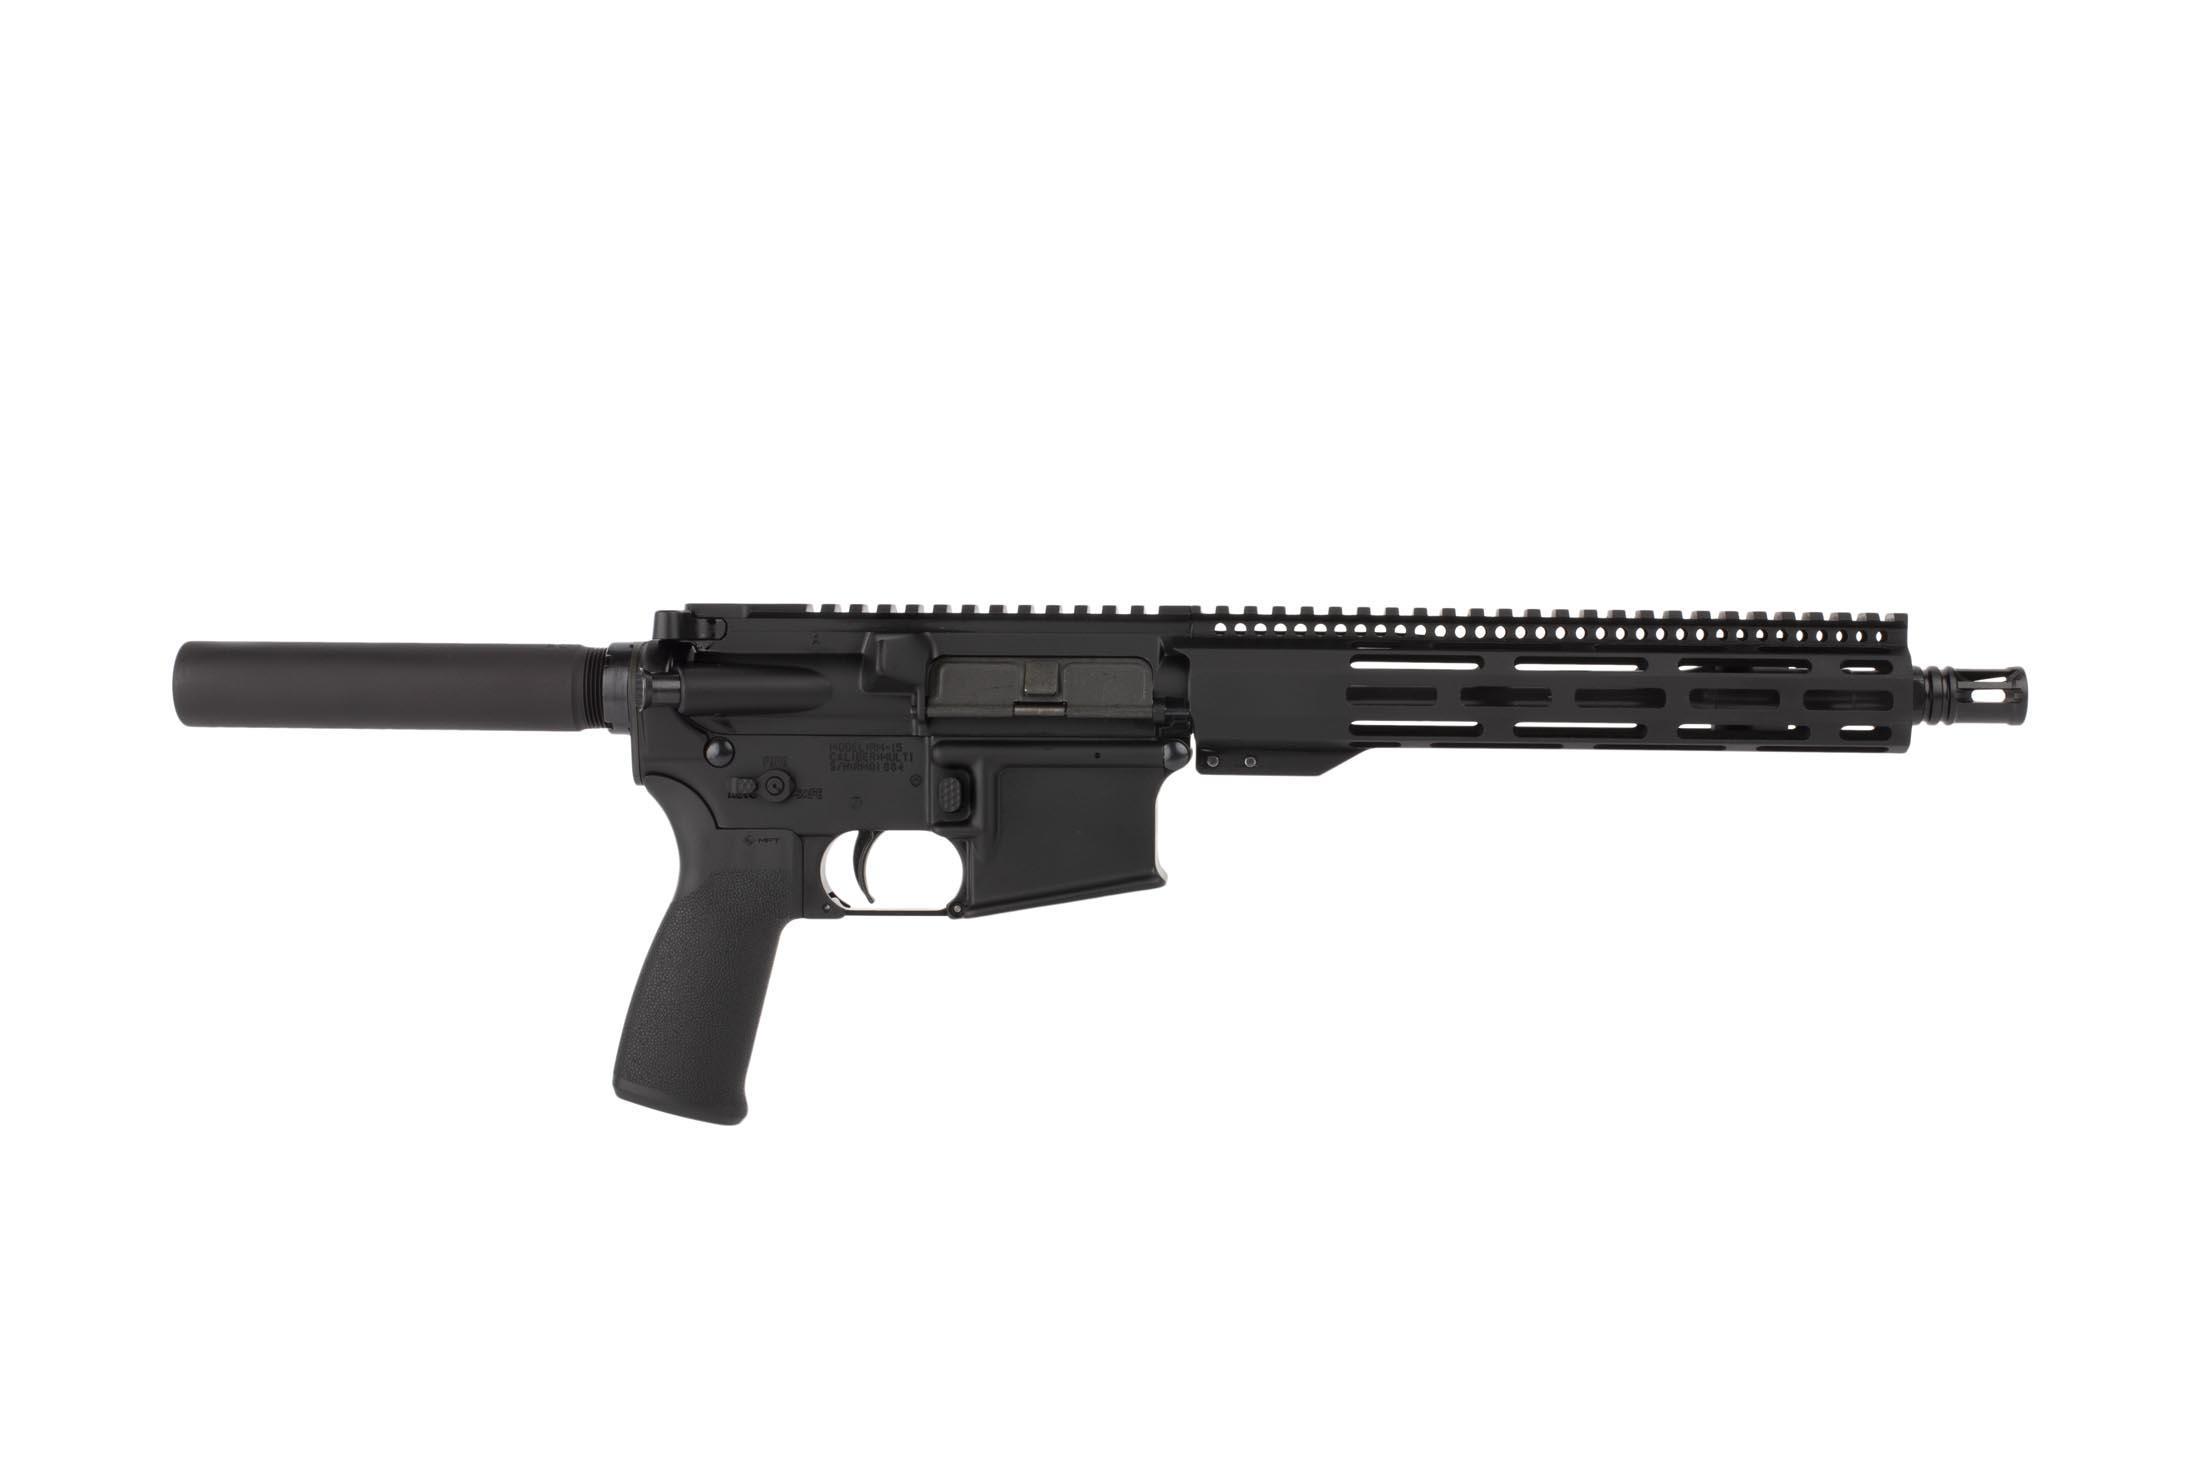 Radical Firearms 10.5in 5.56 NATO AR15 pistol features a reliable carbine length gas system